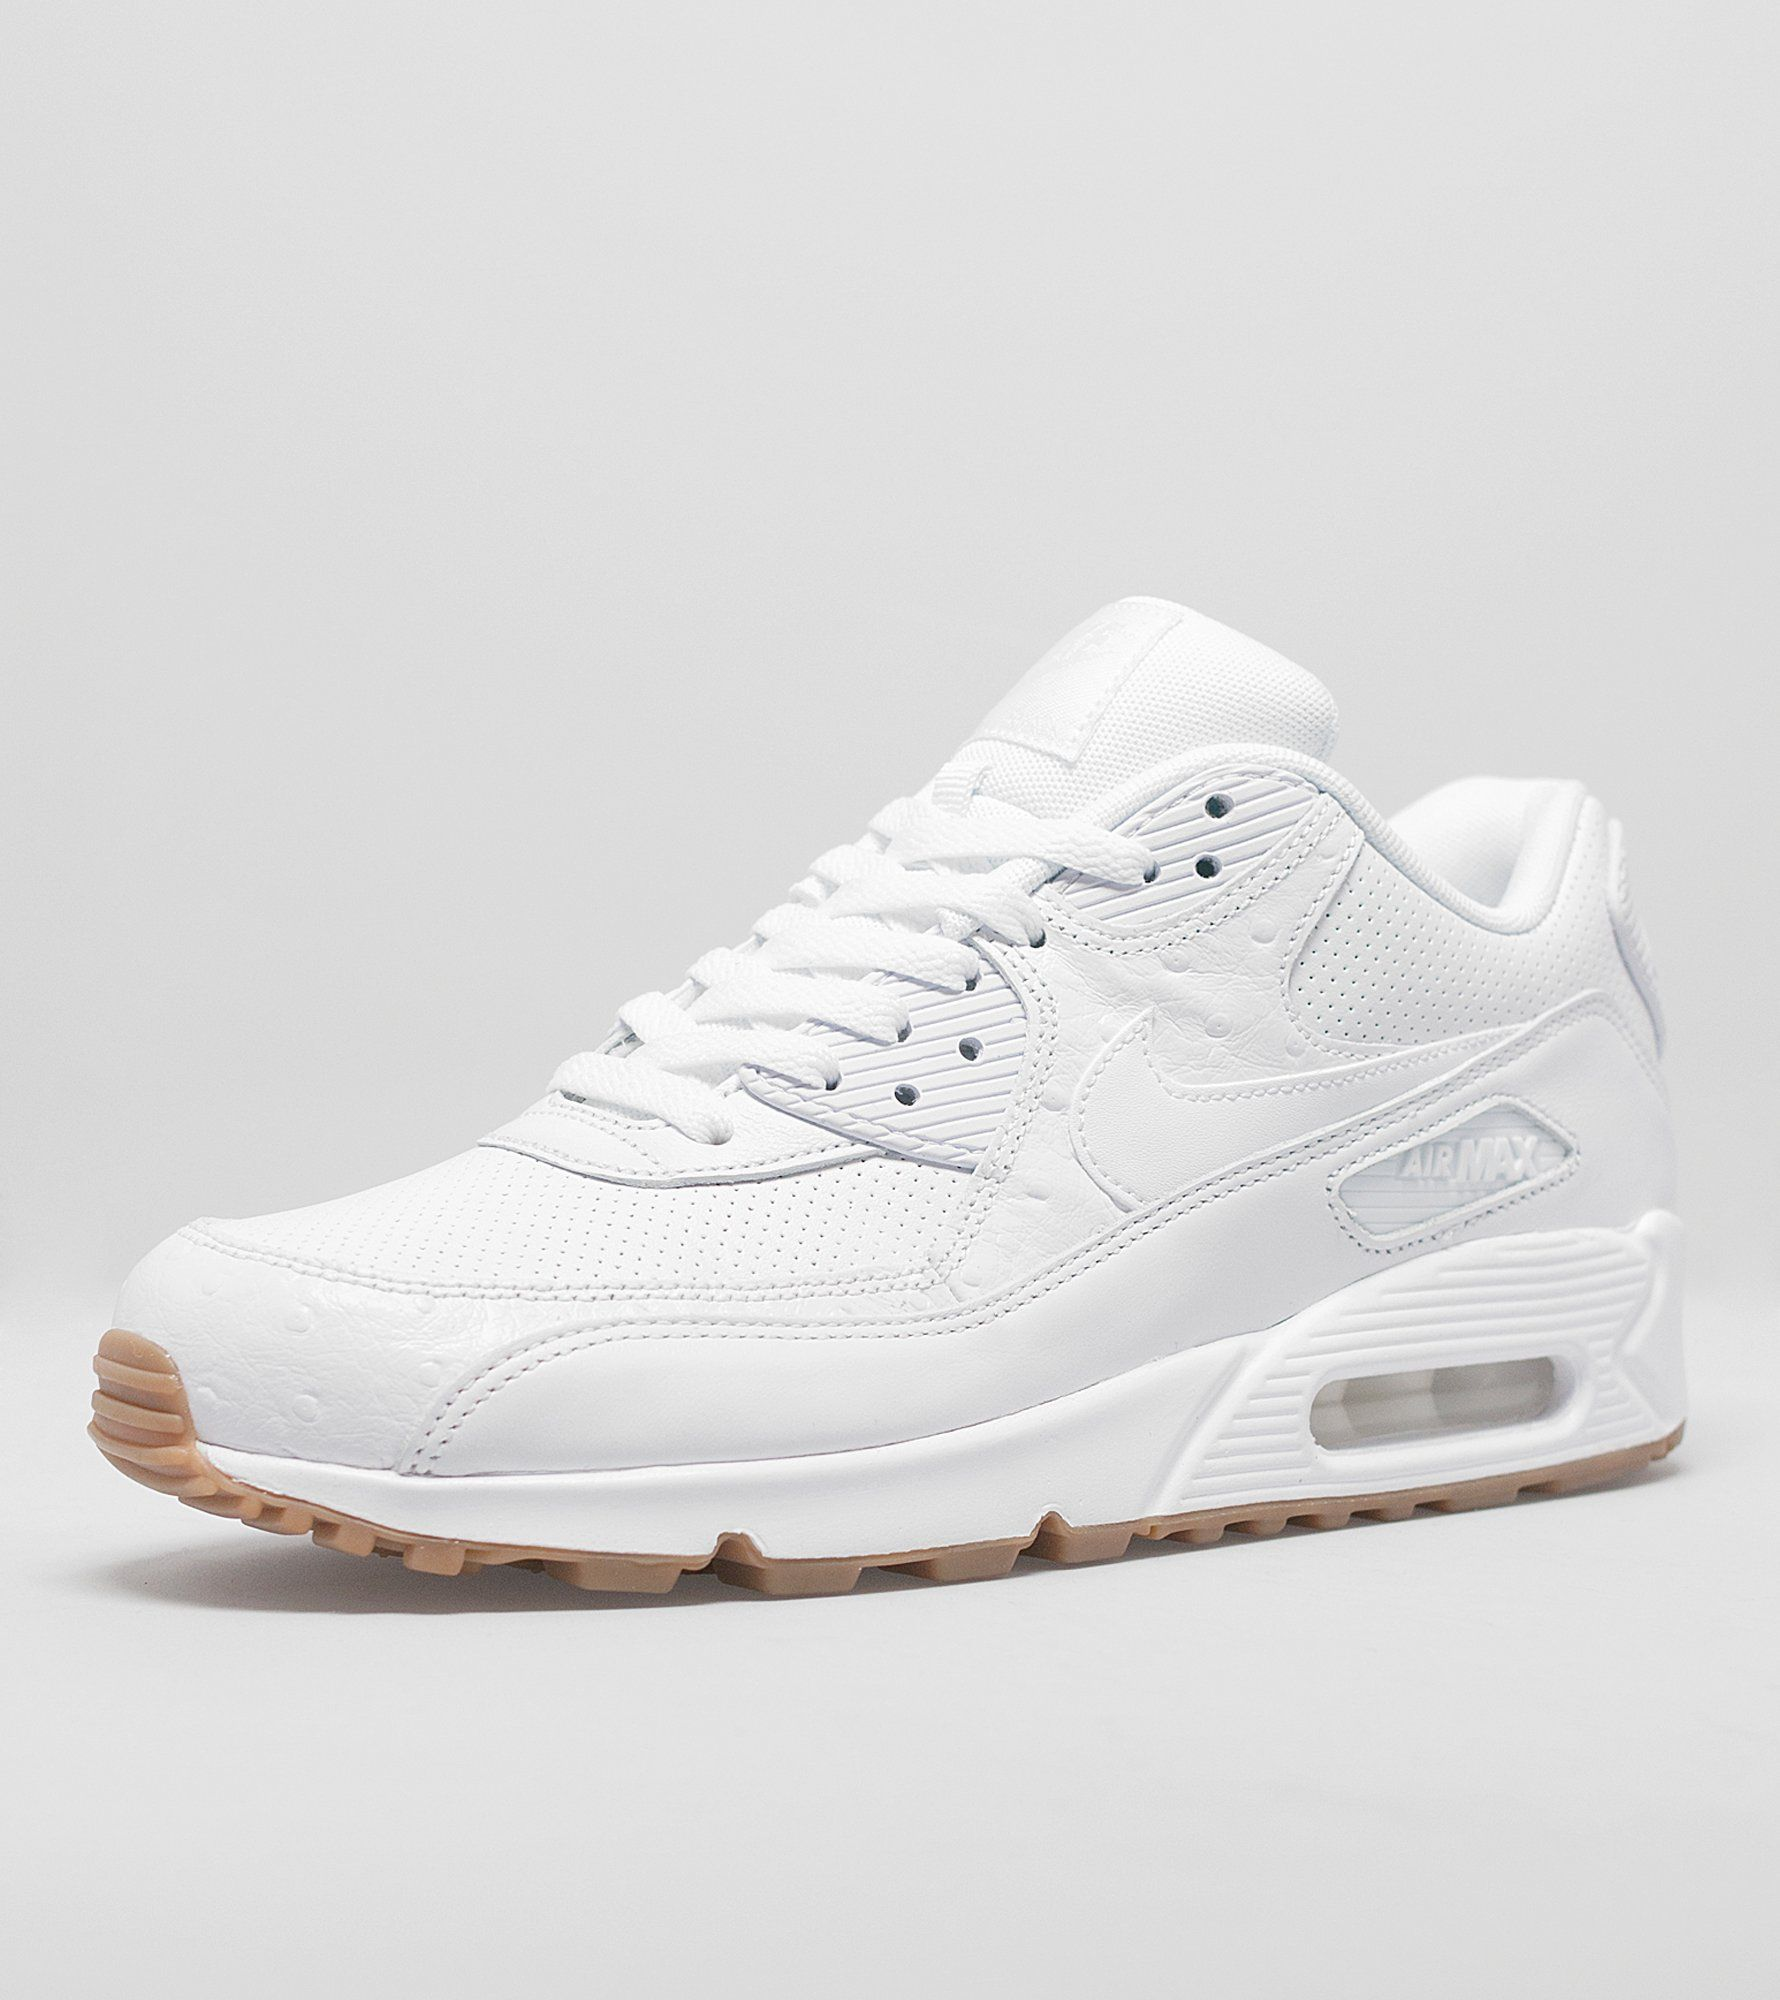 Nike Air Max 90 White Gum Pack find out more on our site